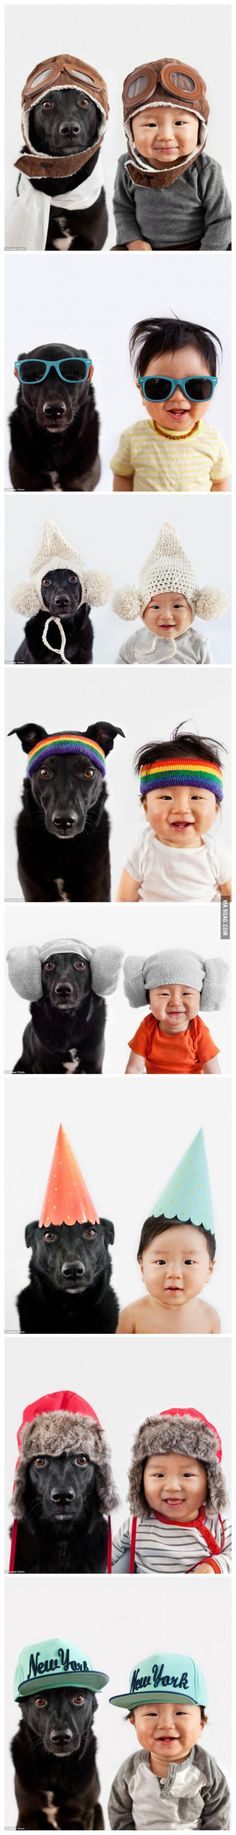 A dog and her little boy